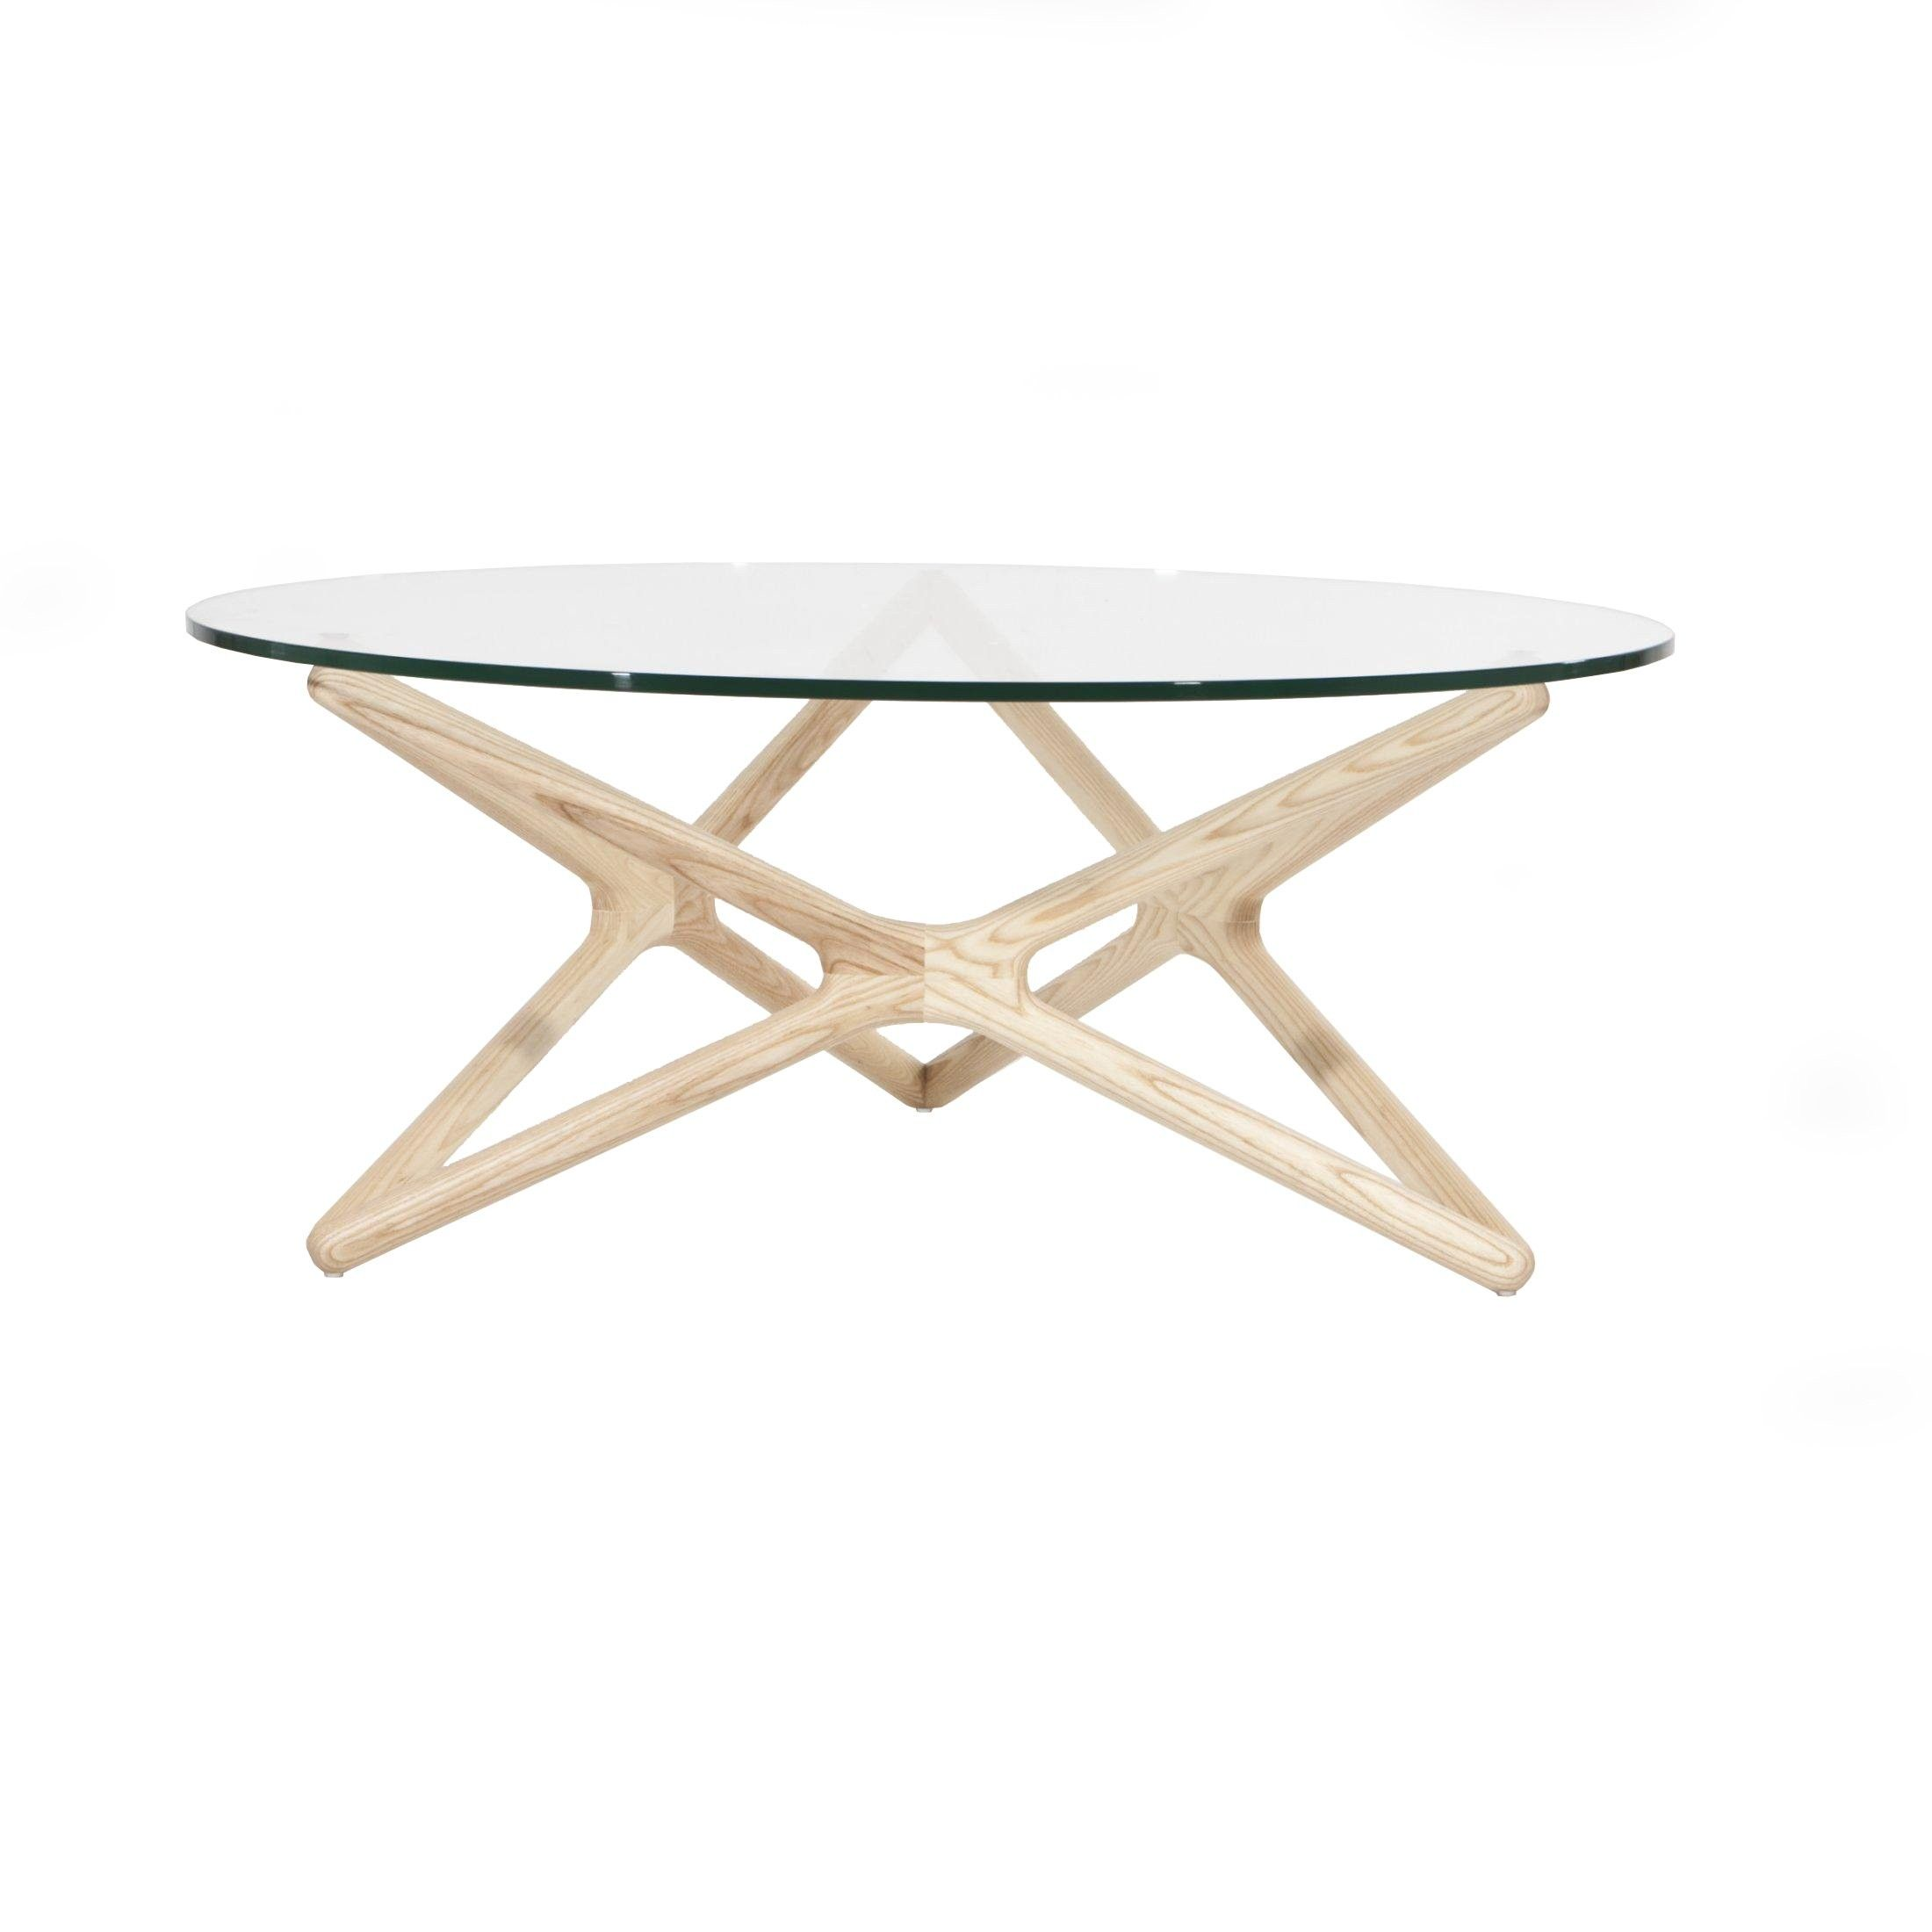 Cool Round Gl Coffee Table Wood Base For Interior Home Paint Color Ideas